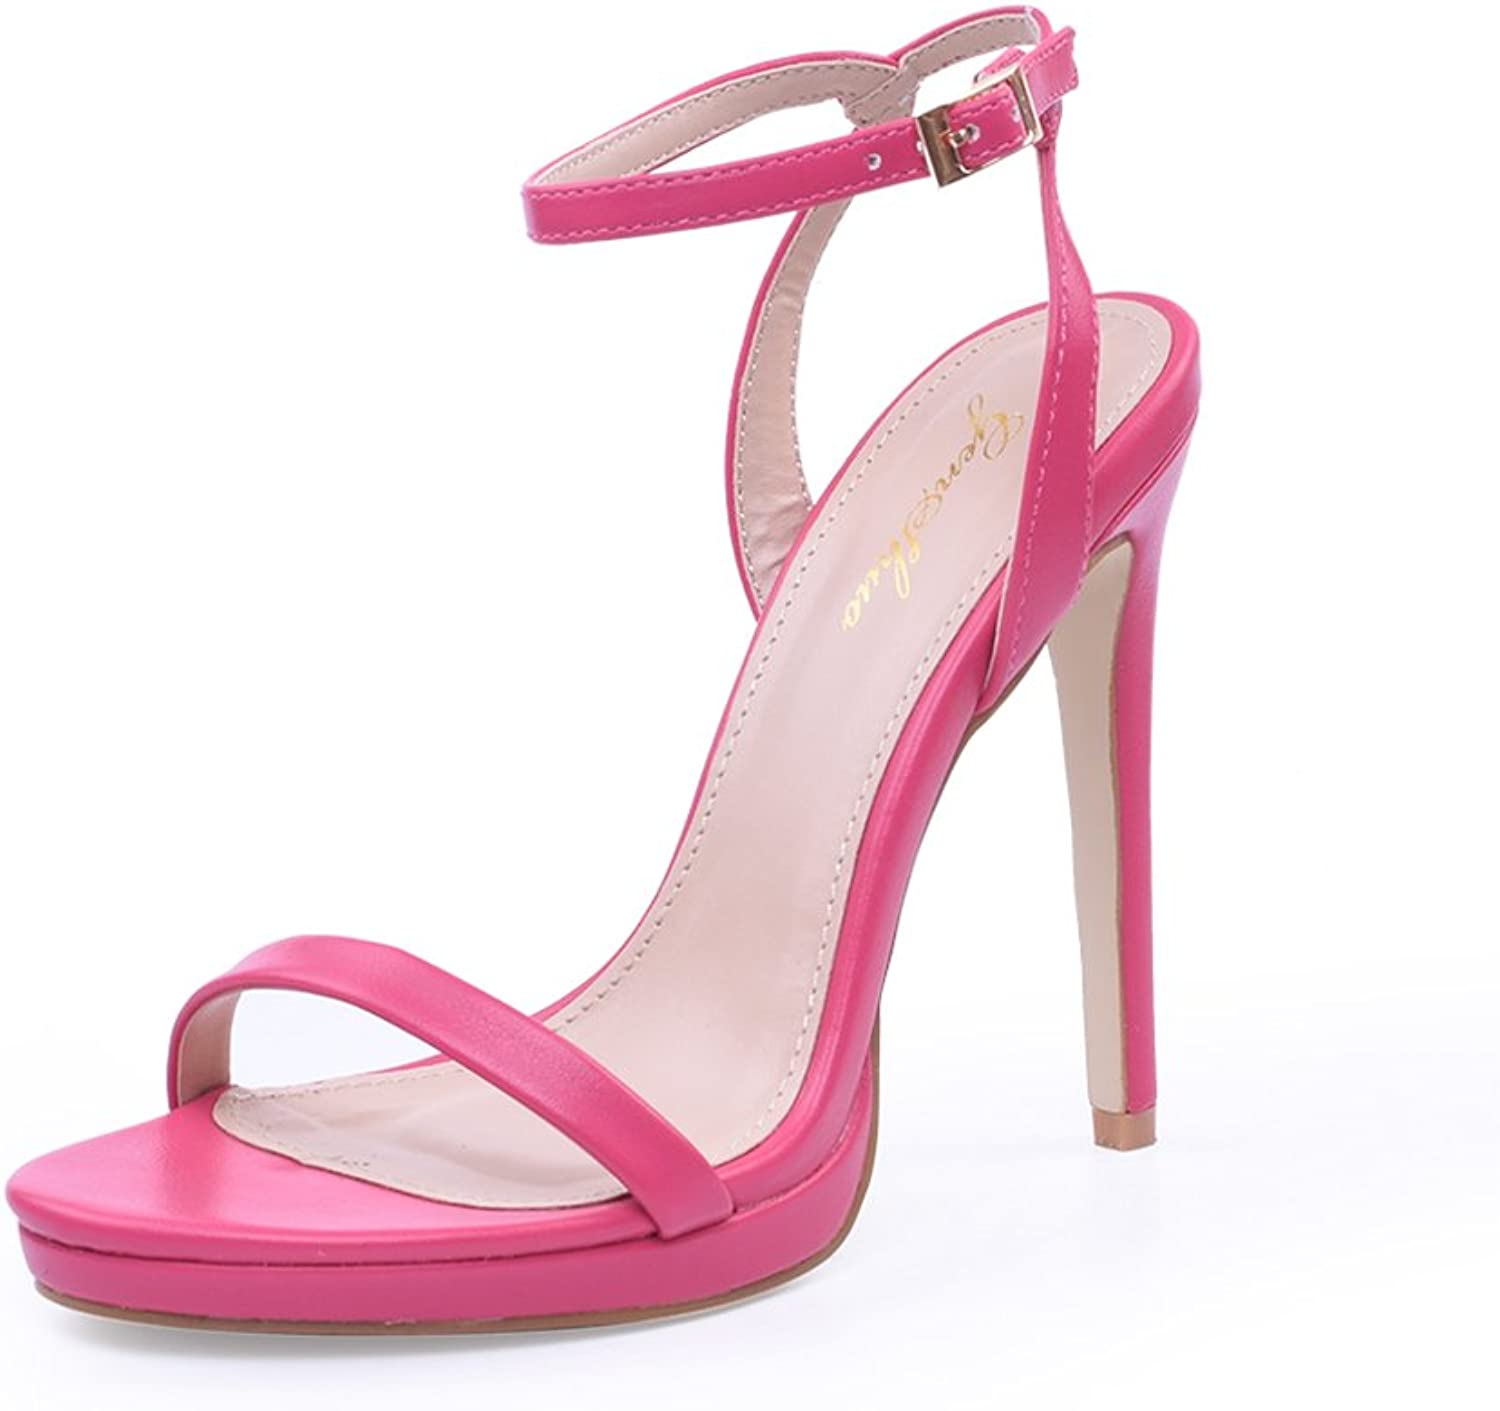 Womens Sandals Comfortable Soft Sexy Buckle Ankle Strap Stiletto Heeled Sandal